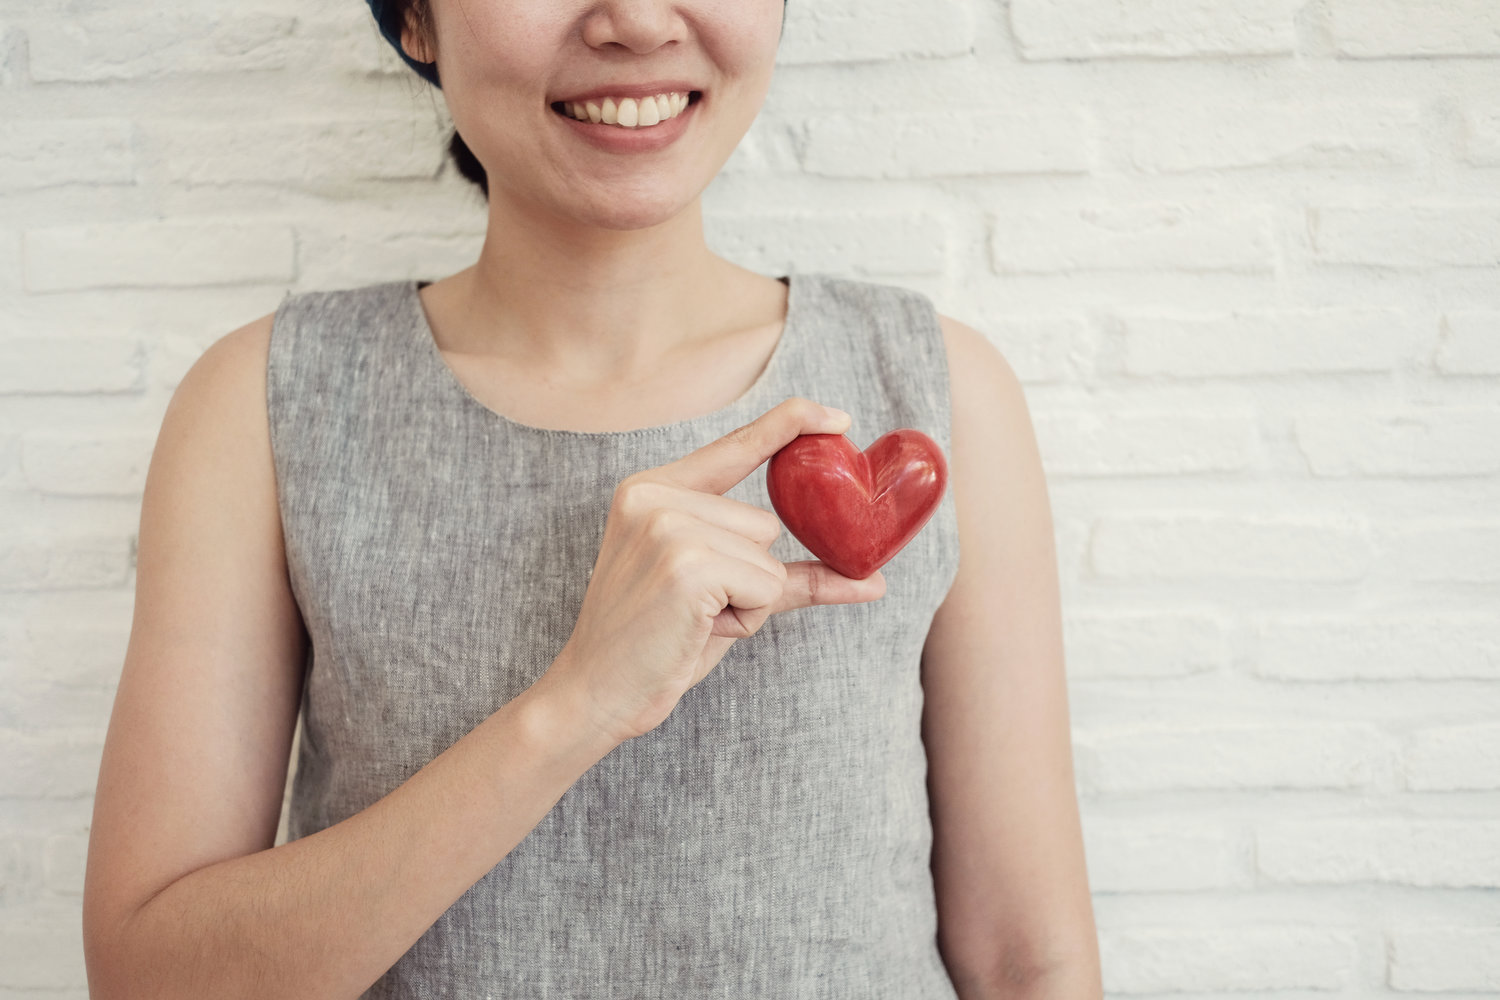 5 Simple Ways To Naturally Improve Your Heart Health